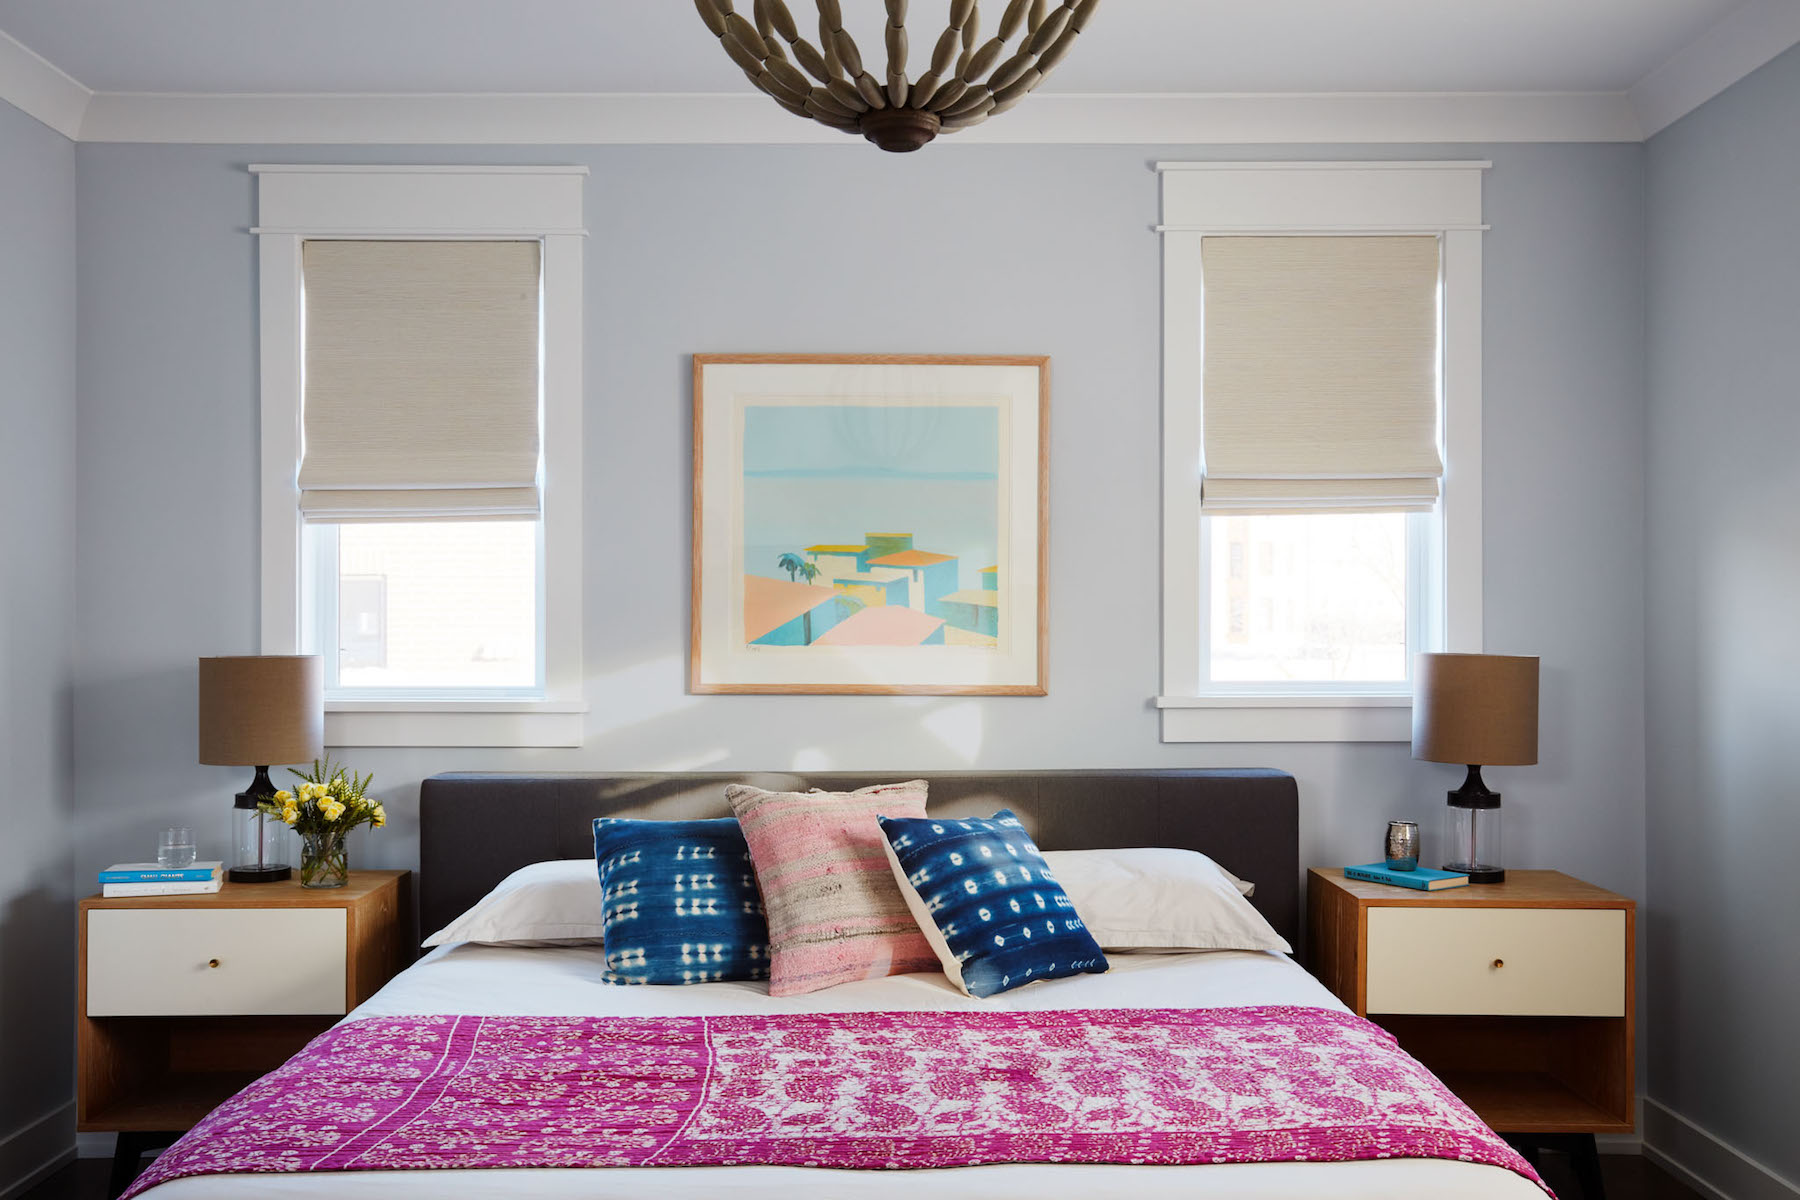 12 Paint Colors That Make You Happier, According To Pros